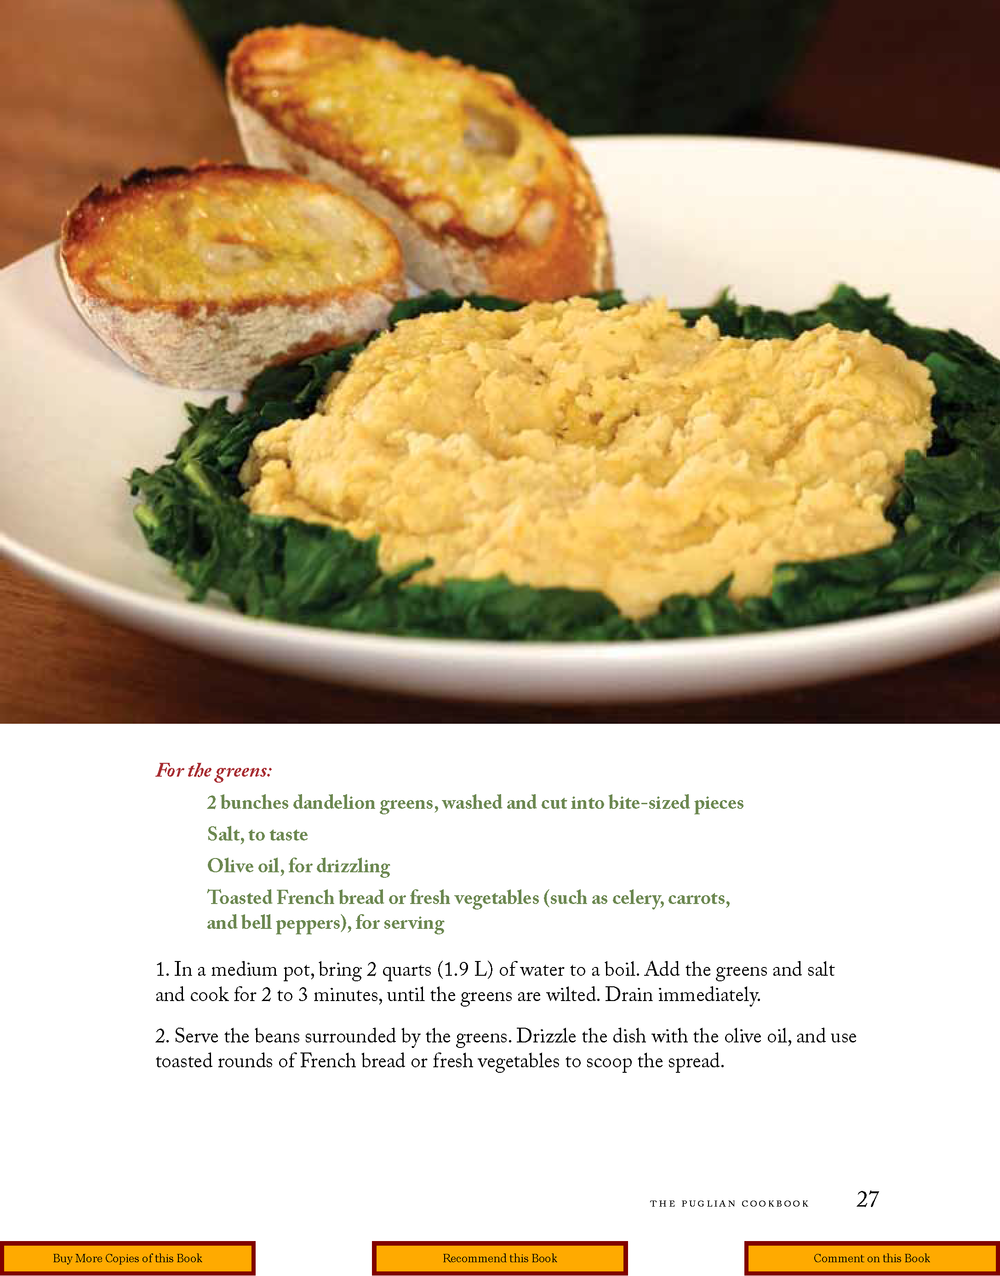 Puglian Cookbook_Page_08.png